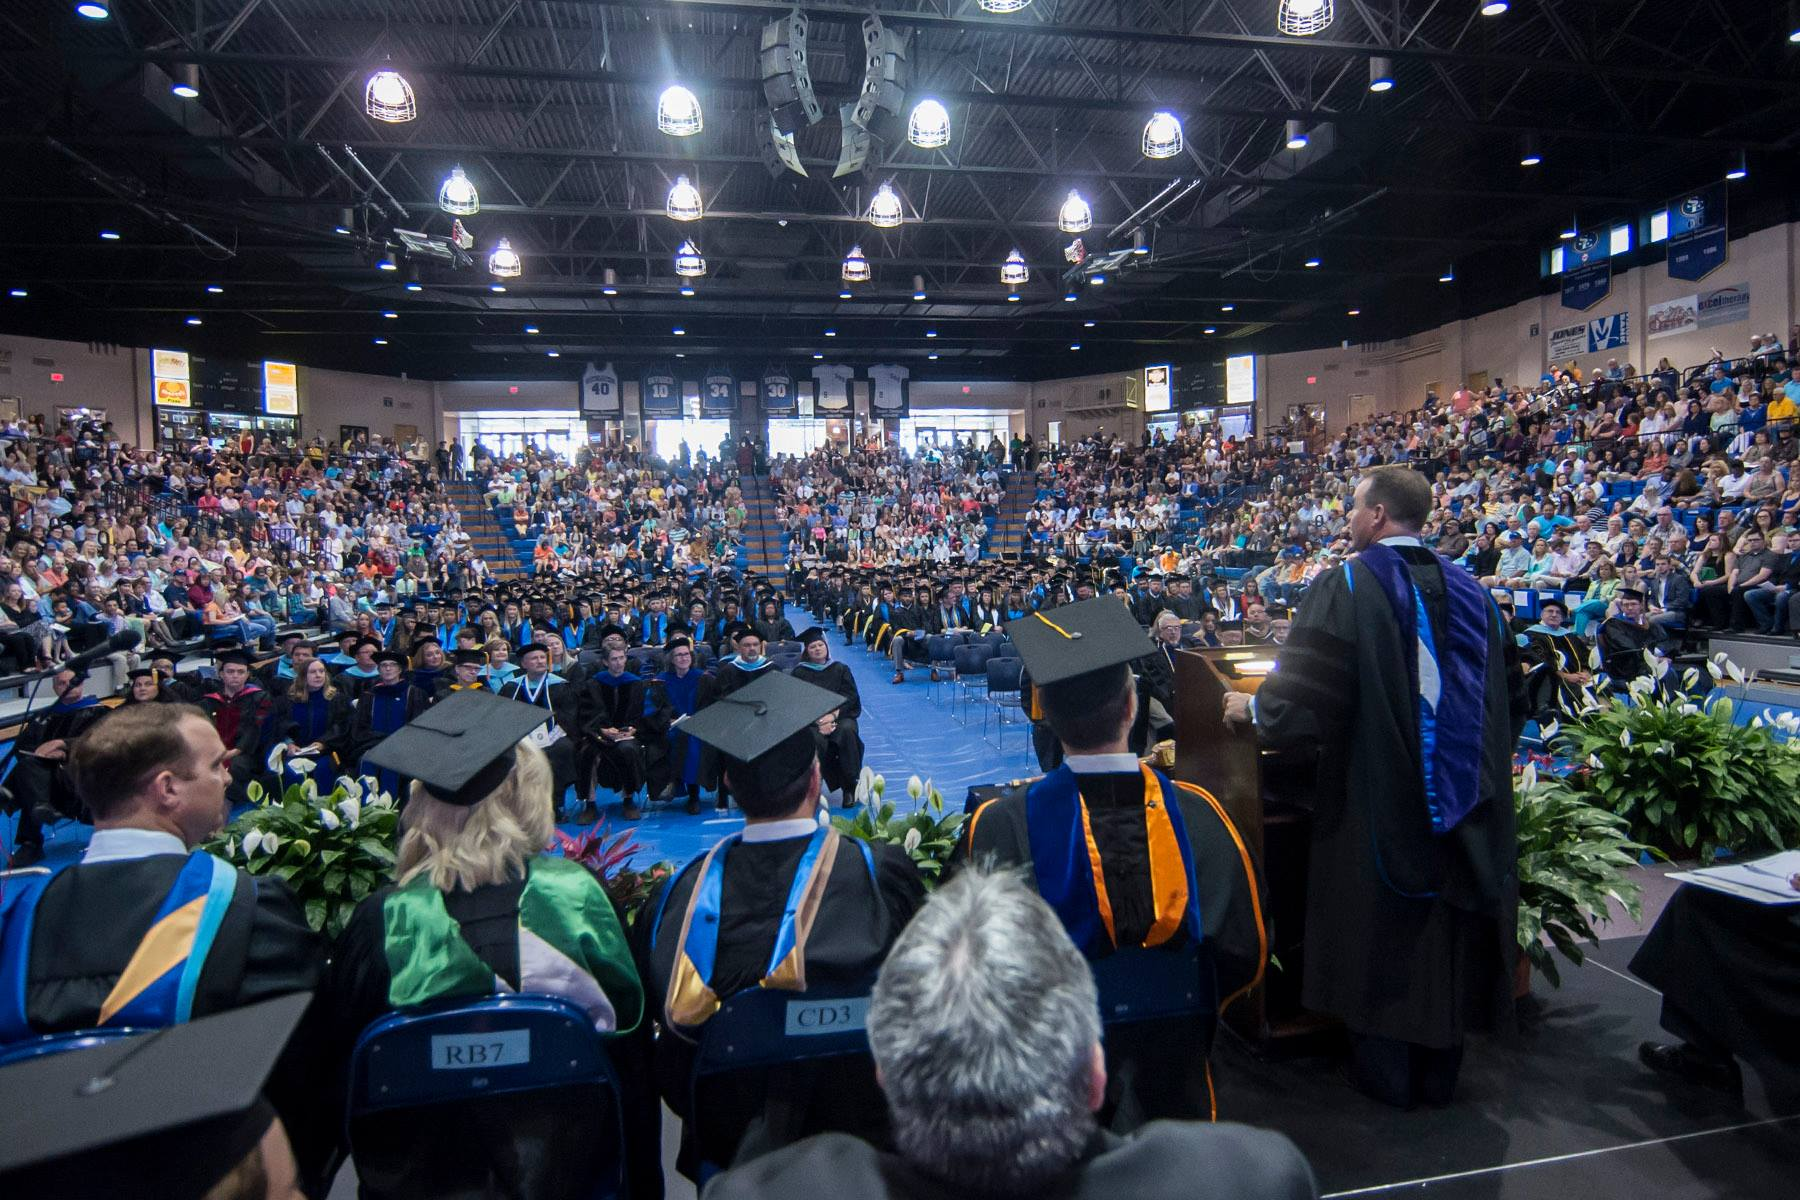 Graduating students and faculty members gathered in the Bloomer Sullivan arena for the Spring 2016 commencement ceremonies. Photo courtesy of Dan Hoke via the Southeastern Oklahoma State Facebook page.